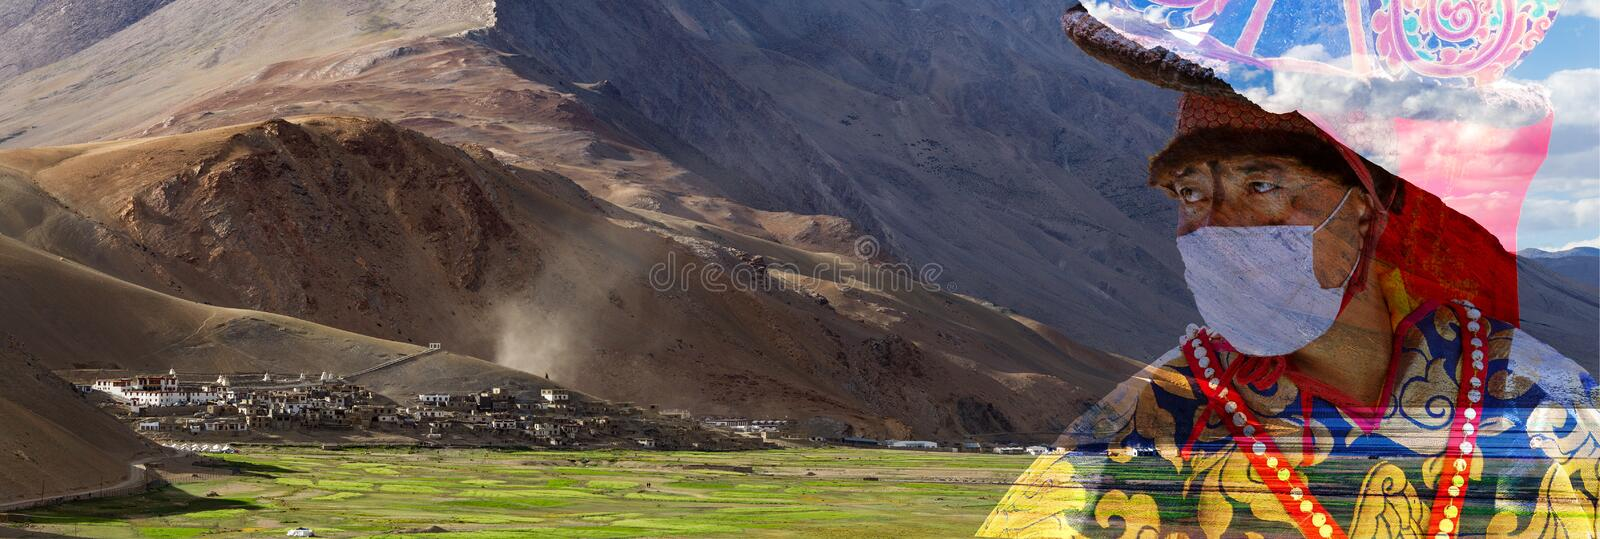 Panorama of the Korzok monastery and village with dancer monk a royalty free stock photos